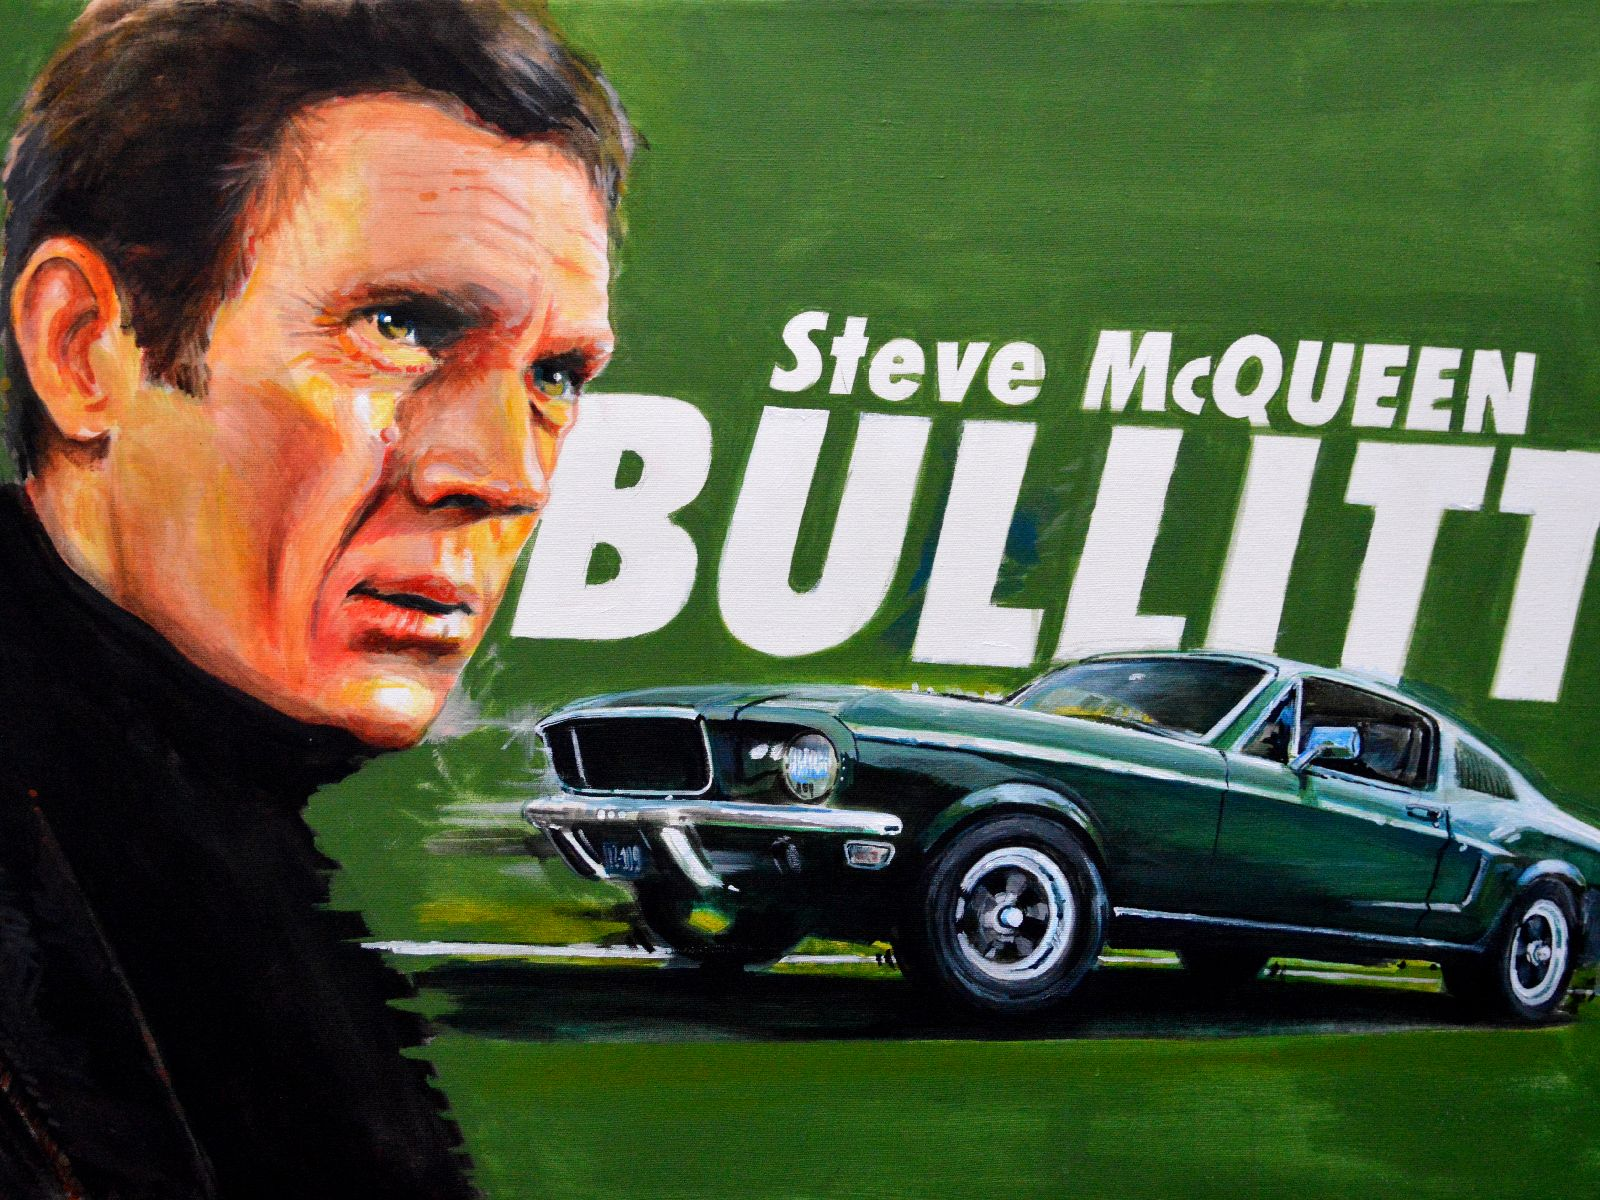 mcqueen-bullit-acryl-100-x-70-cm1.jpg (1600×1200) more about artist on www.p1gallery.cz